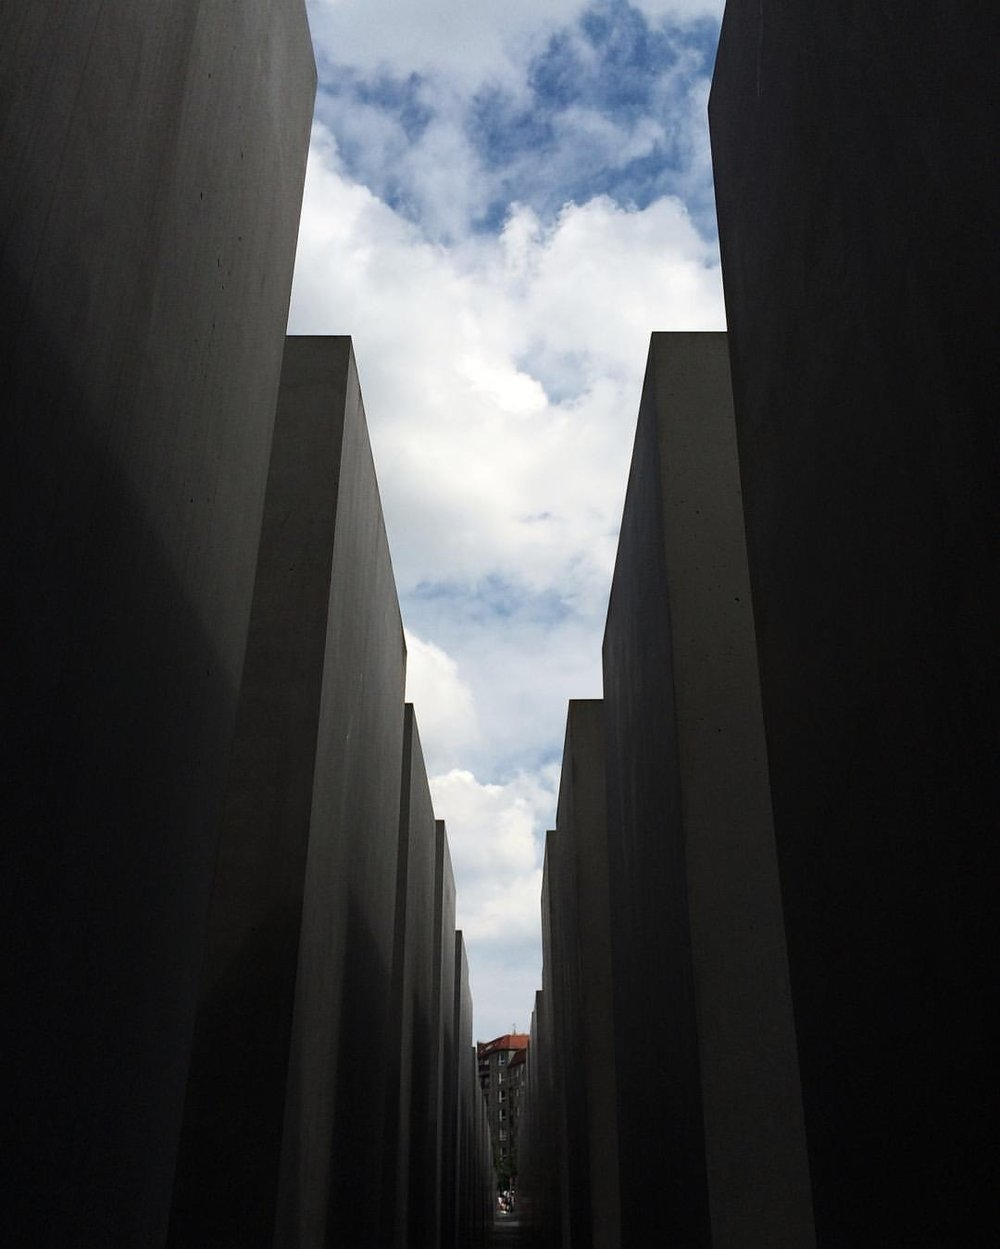 In remembrance   #memorialtothemurderedjewsofeurope     (at Memorial to the Murdered Jews of Europe)